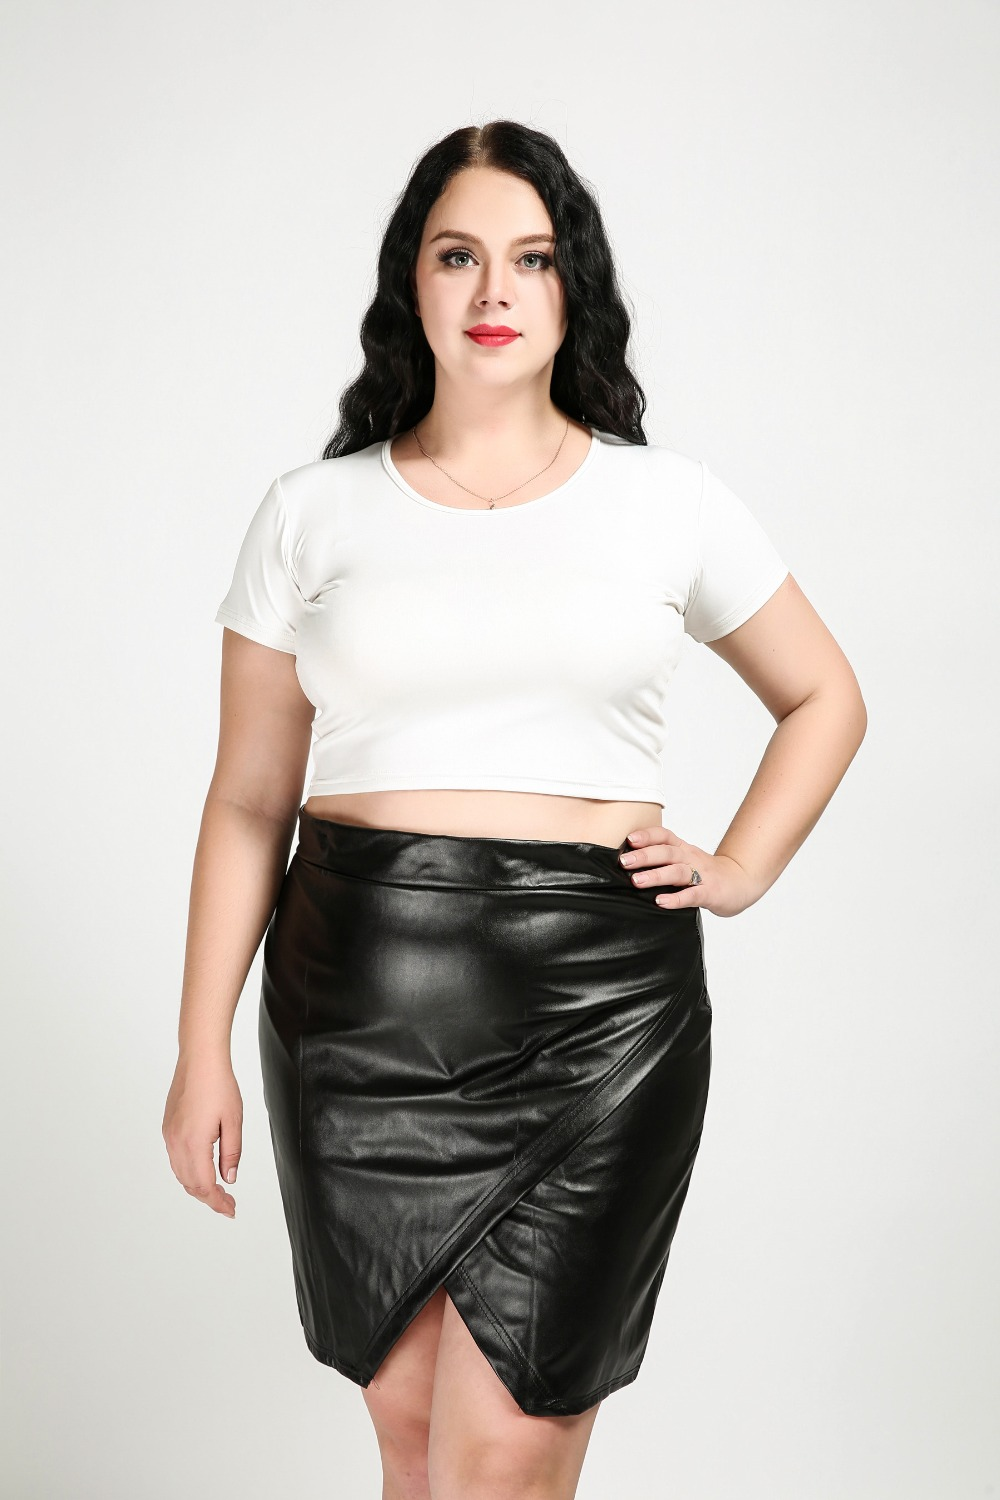 d2c485d5ee4e3 Women s Sexy Plus Size Faux Leather Skirt Black Knee Length Cocktail Party  Pencil Skirt Spring Autumn